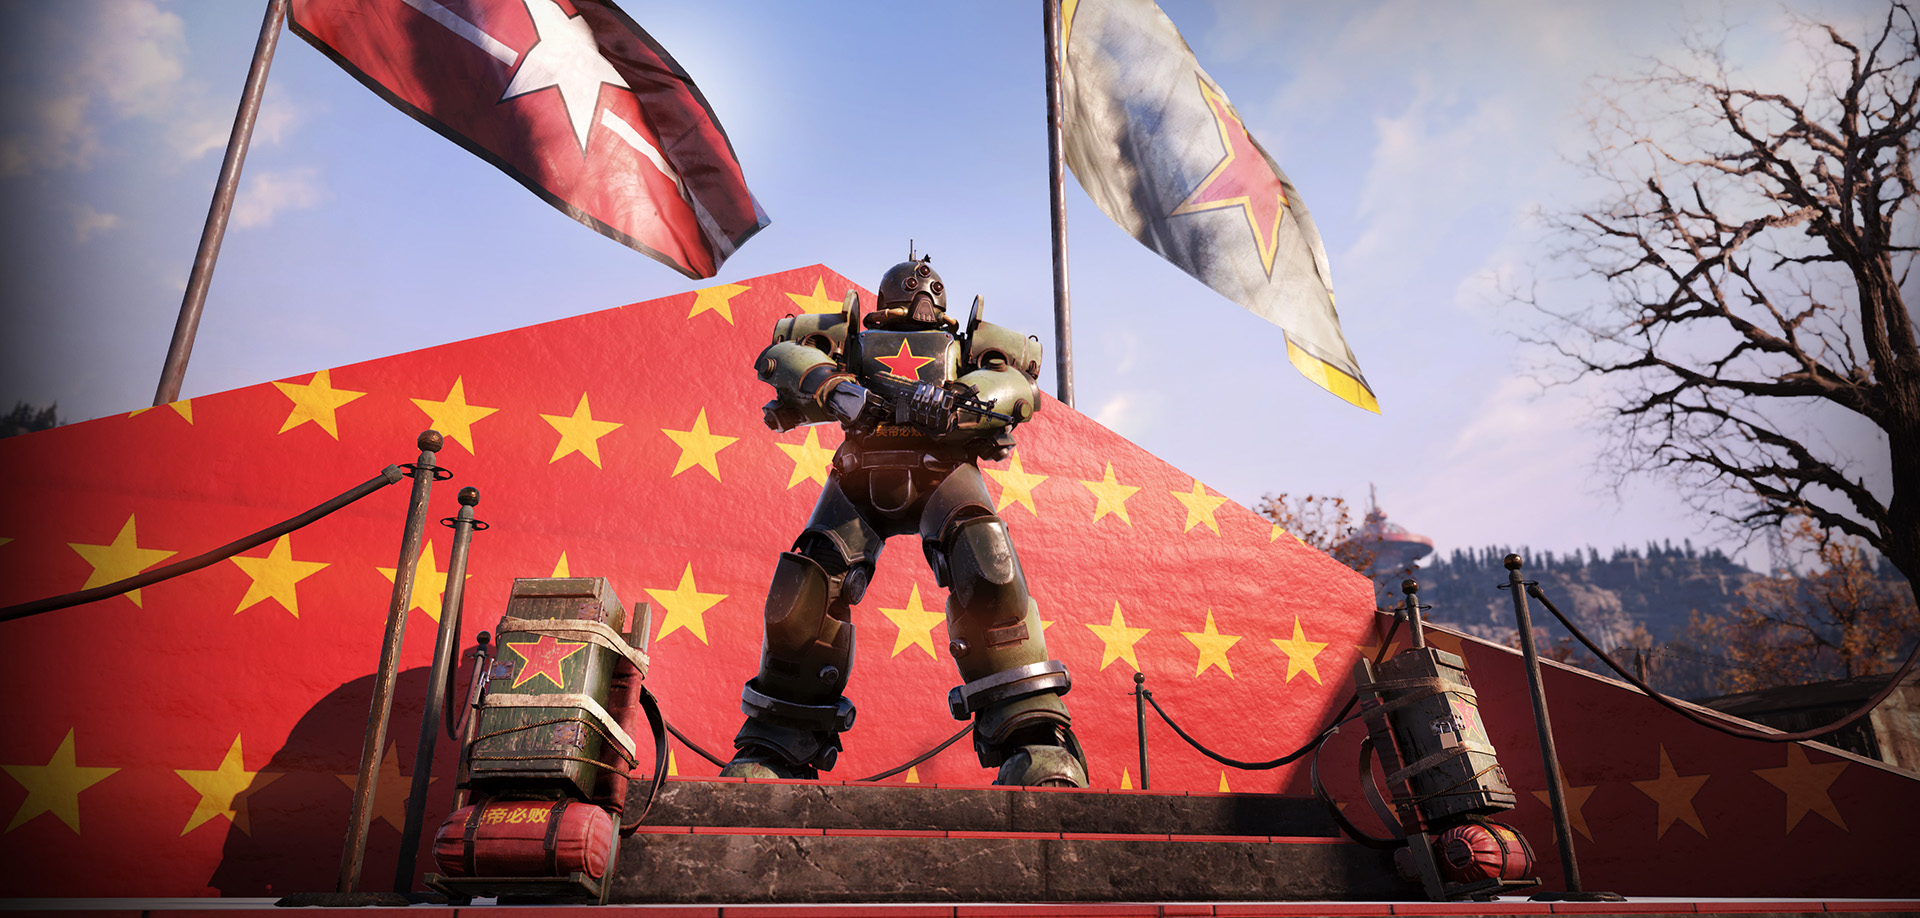 Fallout 76 - images of the new Red Shift cosmetics